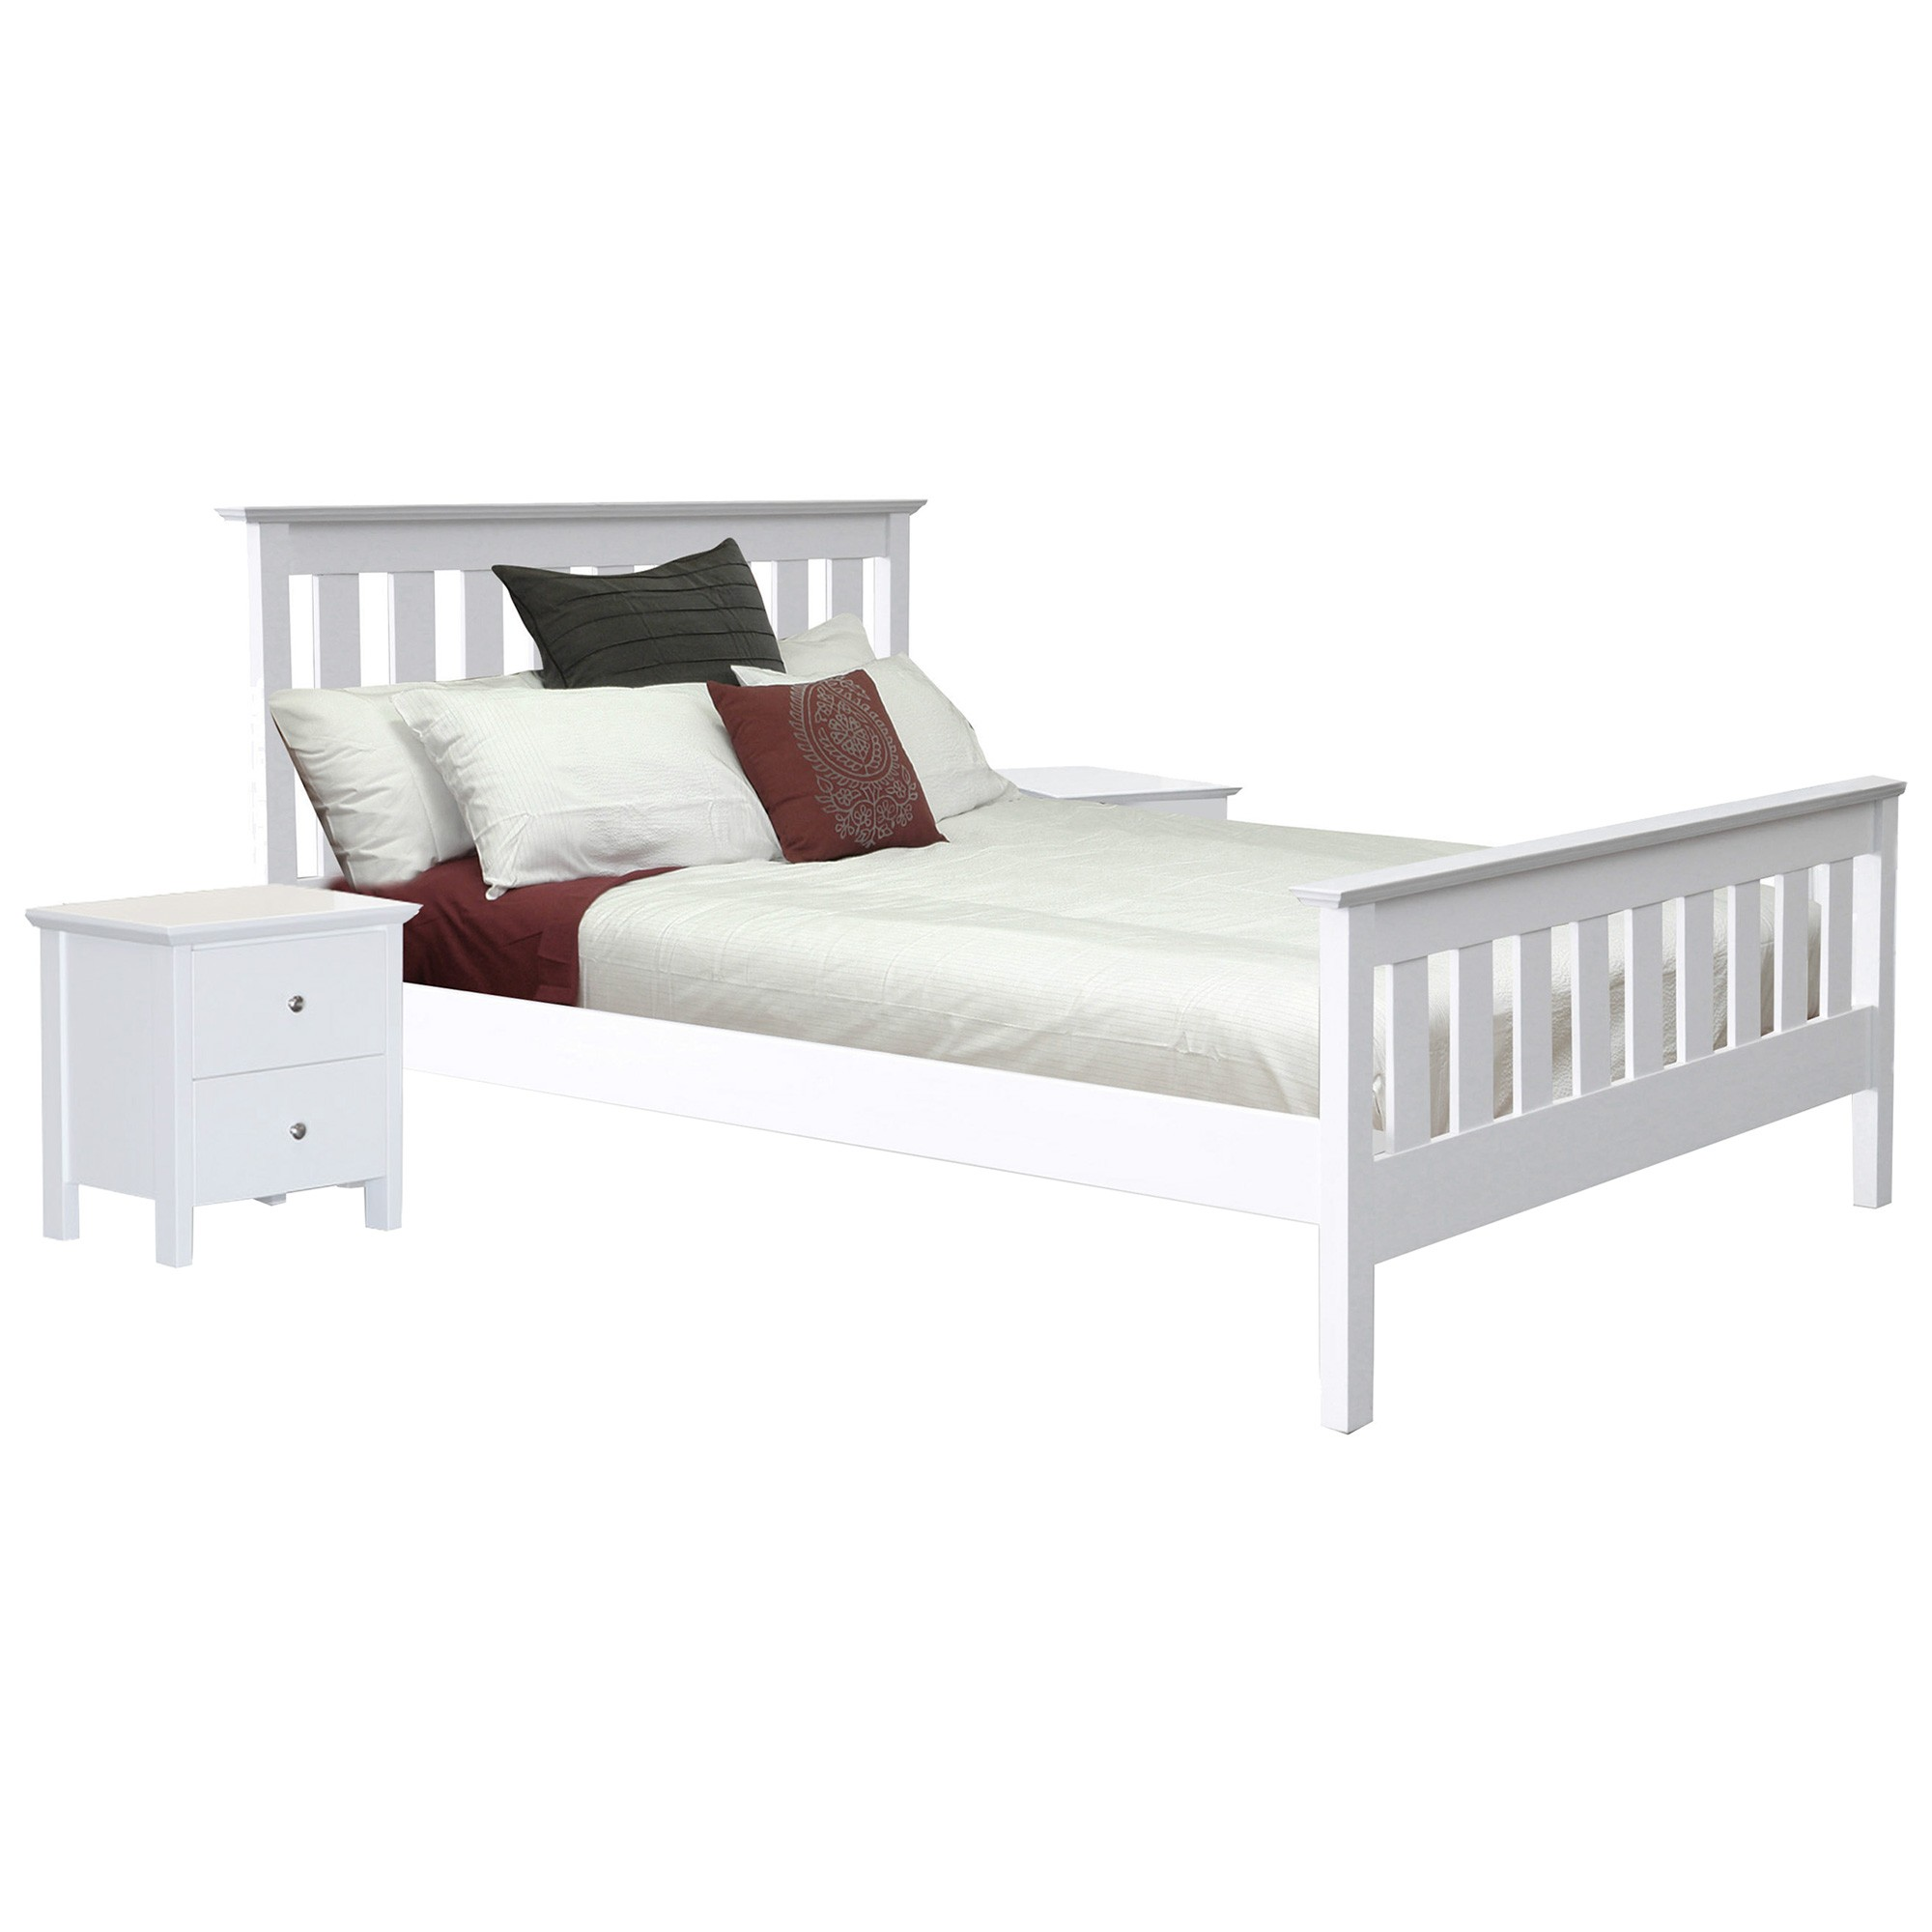 Nicky Wooden Bed, King Single